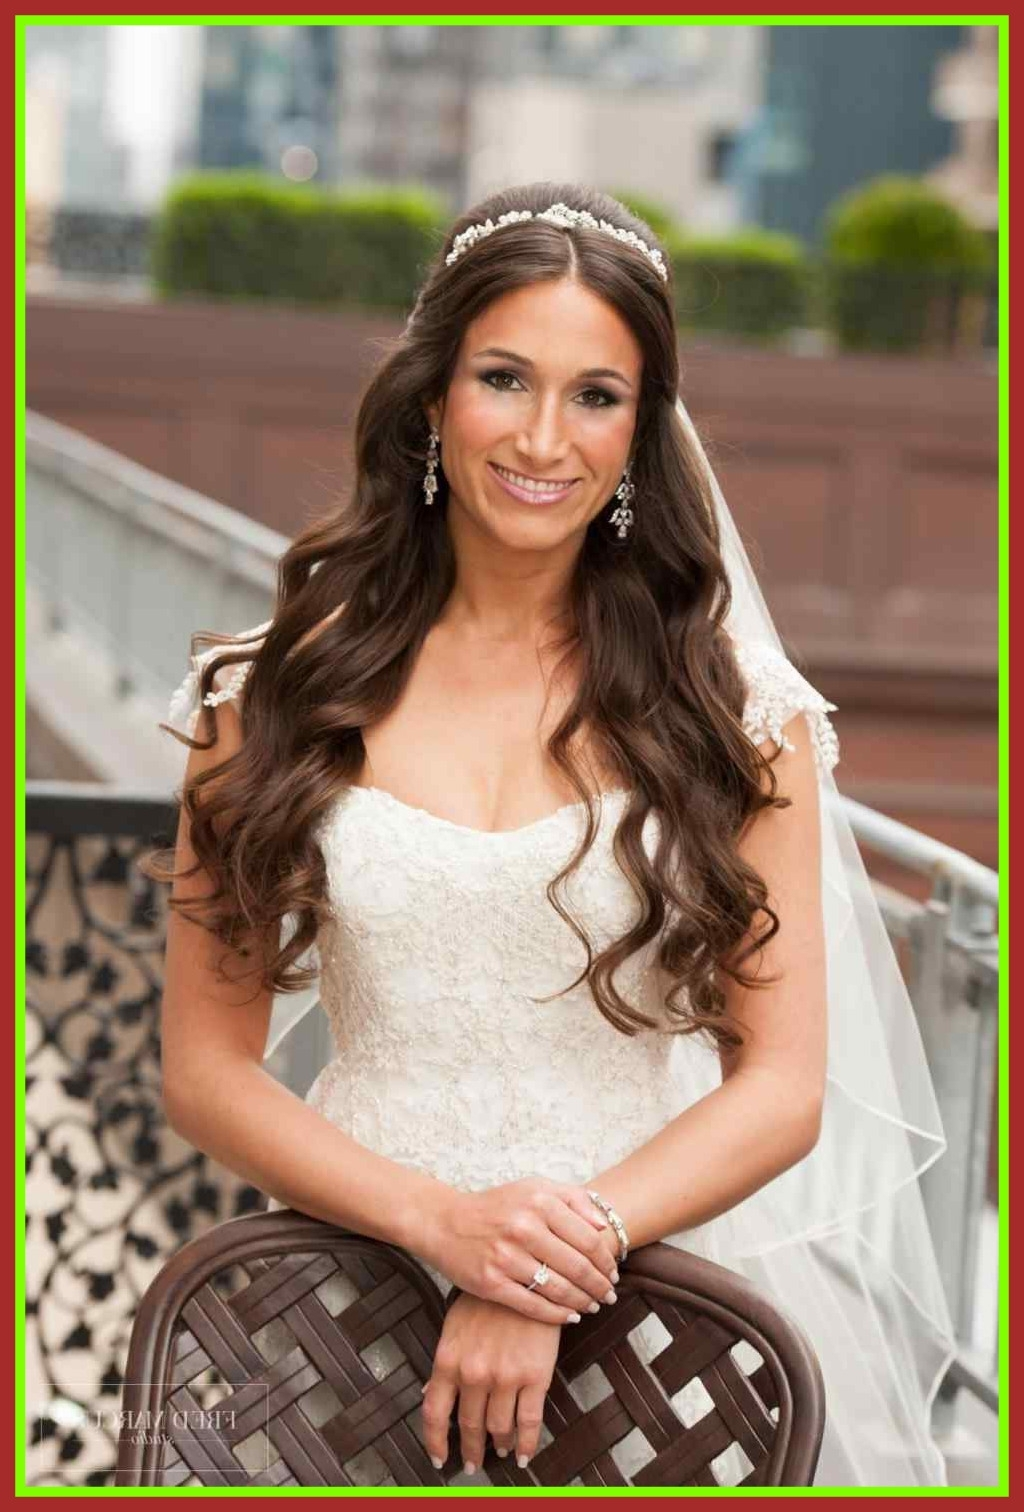 Appealing Hair Wedding Hairstyle Half Up Down With Veil Headband And For Well Known Wedding Hairstyles For Long Hair With Veil And Headband (Gallery 12 of 15)